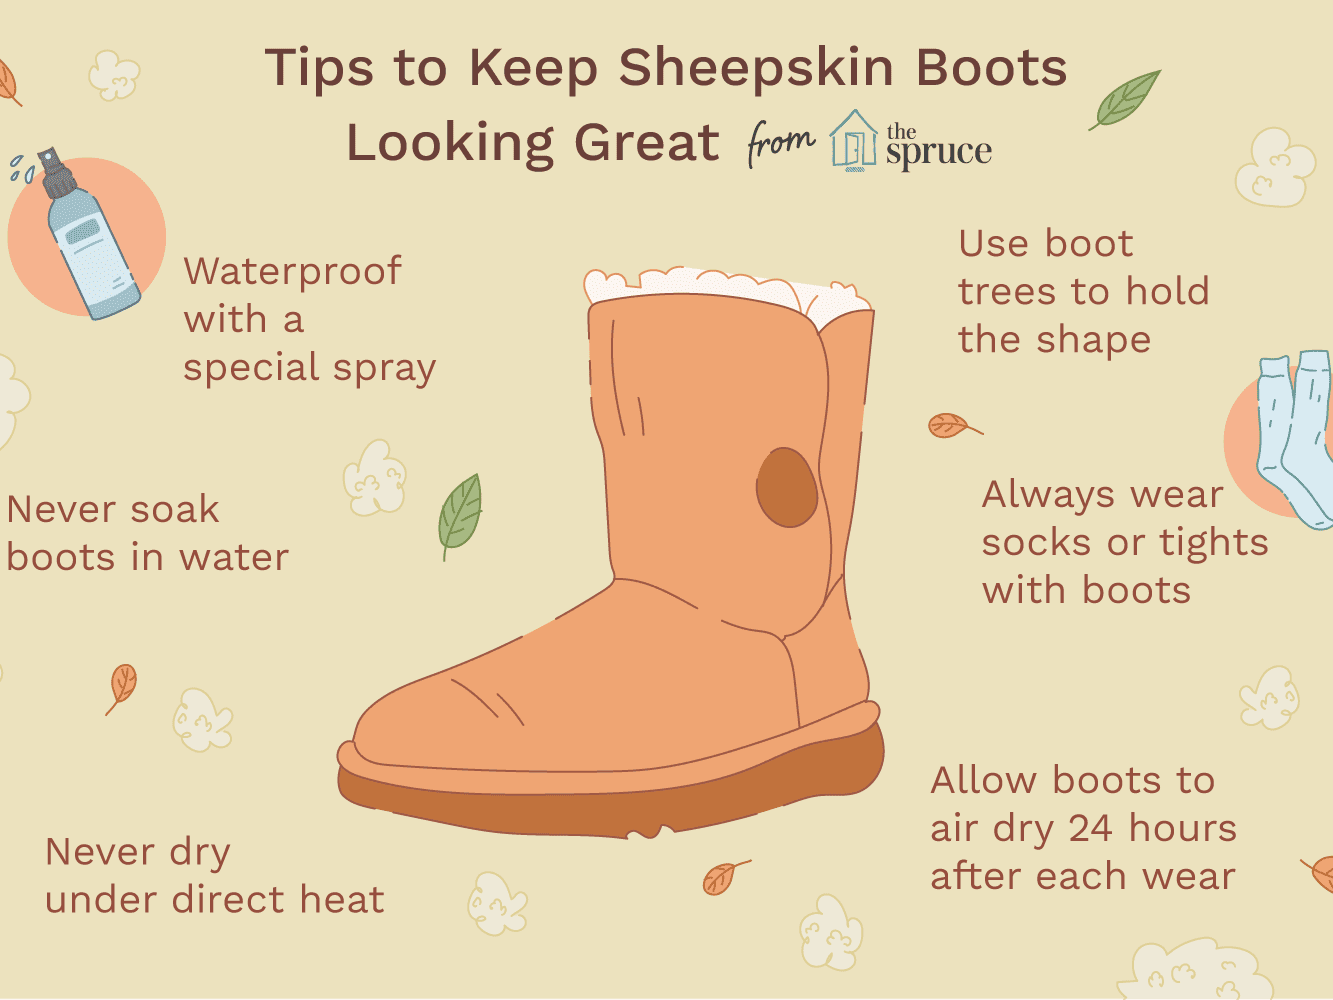 Out Ugg Boots Clean Inside Sheepskin To And How kuOiTXPZ